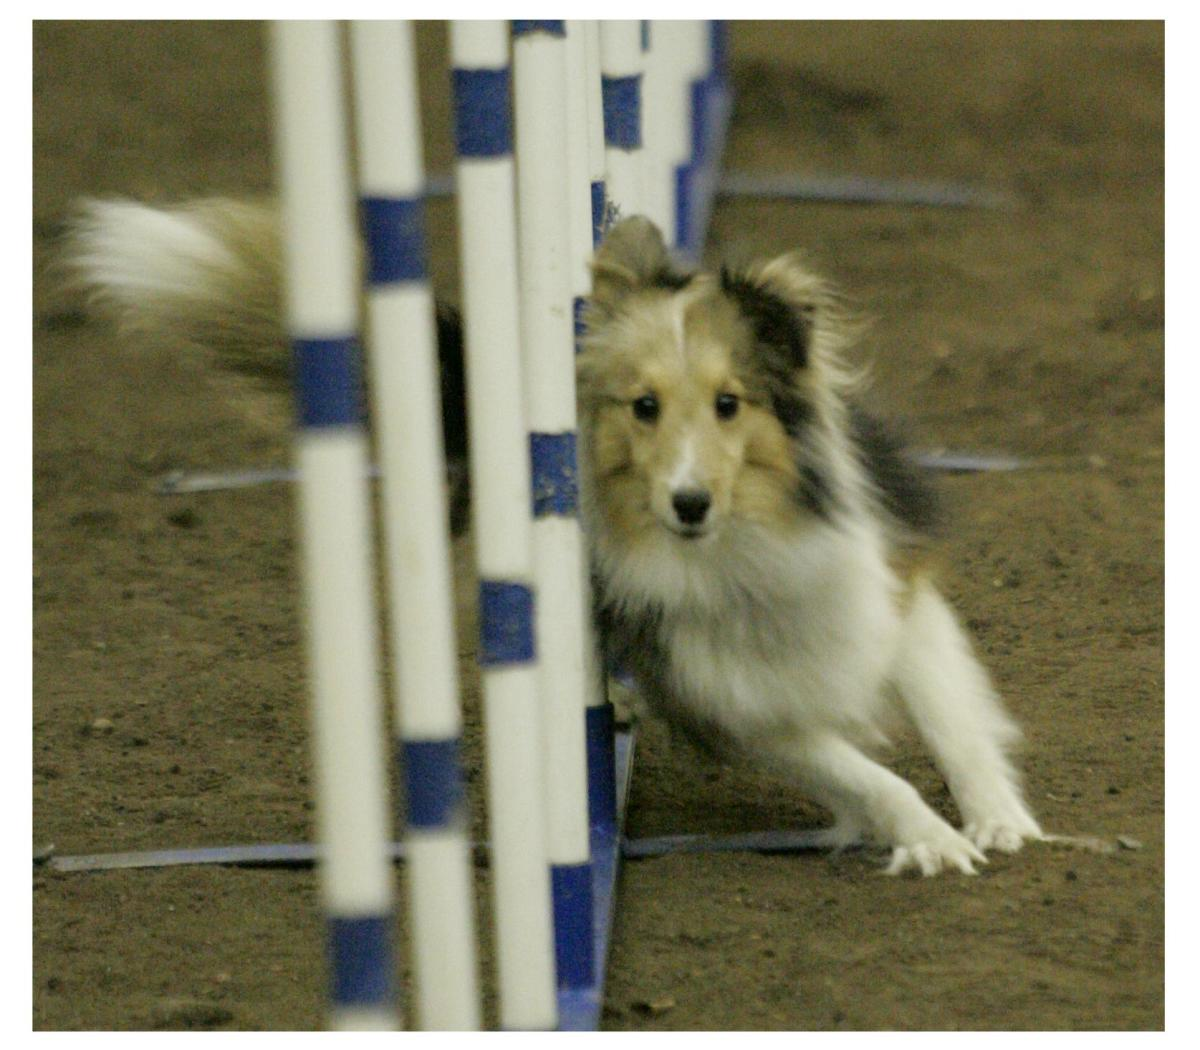 One Dog's Championship Journey: Our Road to Earning the AKC's Agility Championship Title